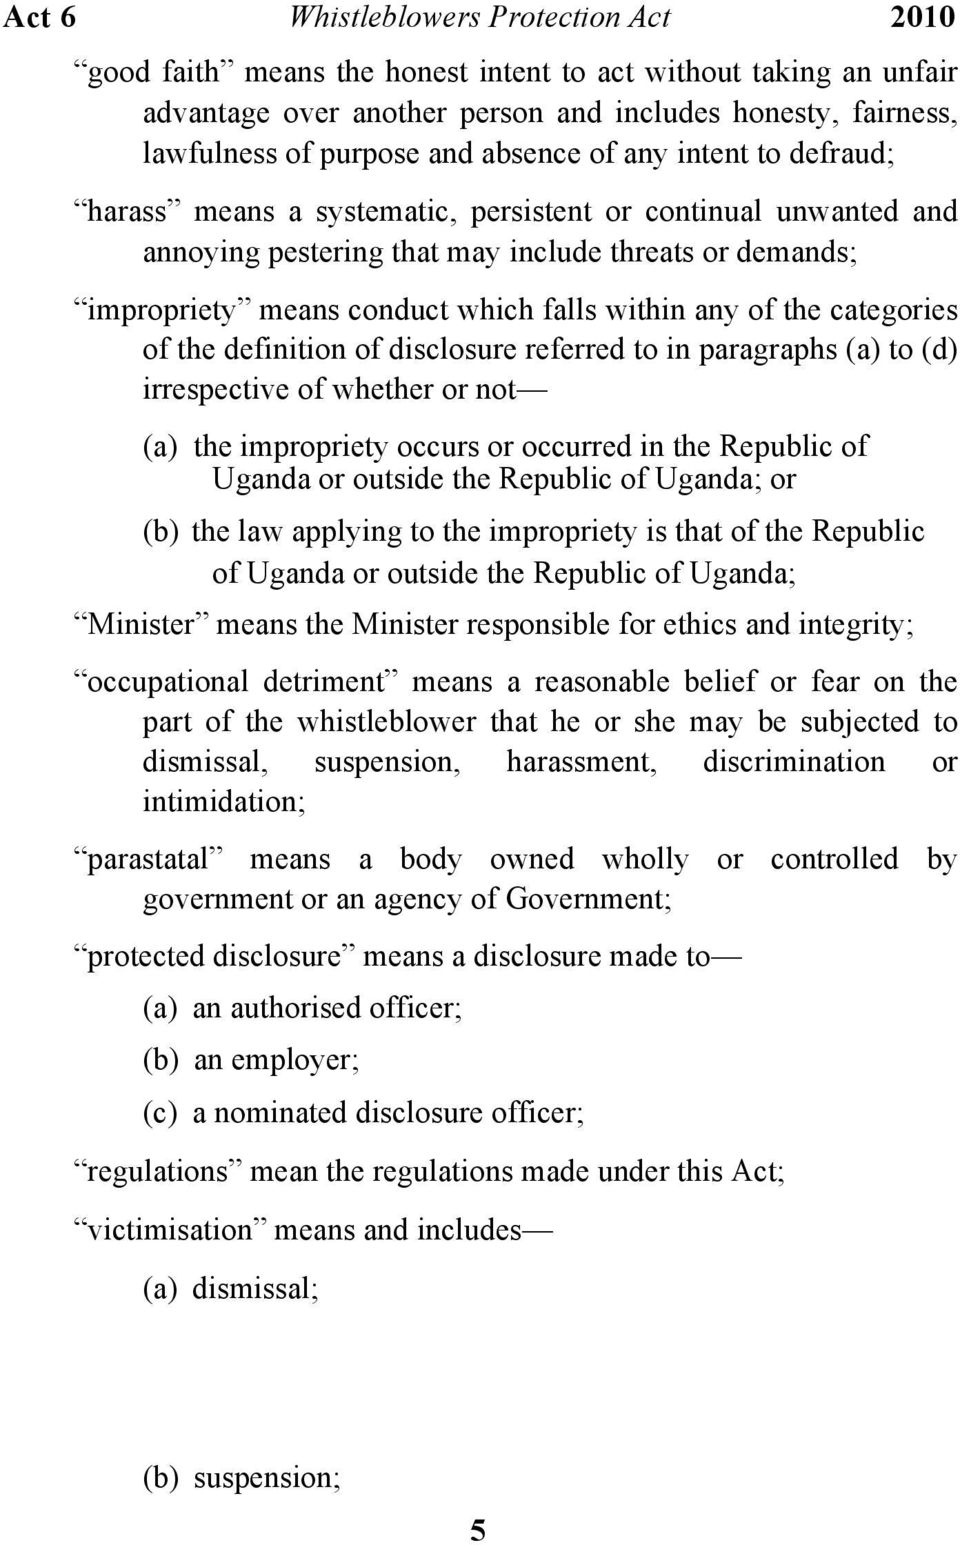 of disclosure referred to in paragraphs (a) to (d) irrespective of whether or not (a) the impropriety occurs or occurred in the Republic of Uganda or outside the Republic of Uganda; or (b) the law